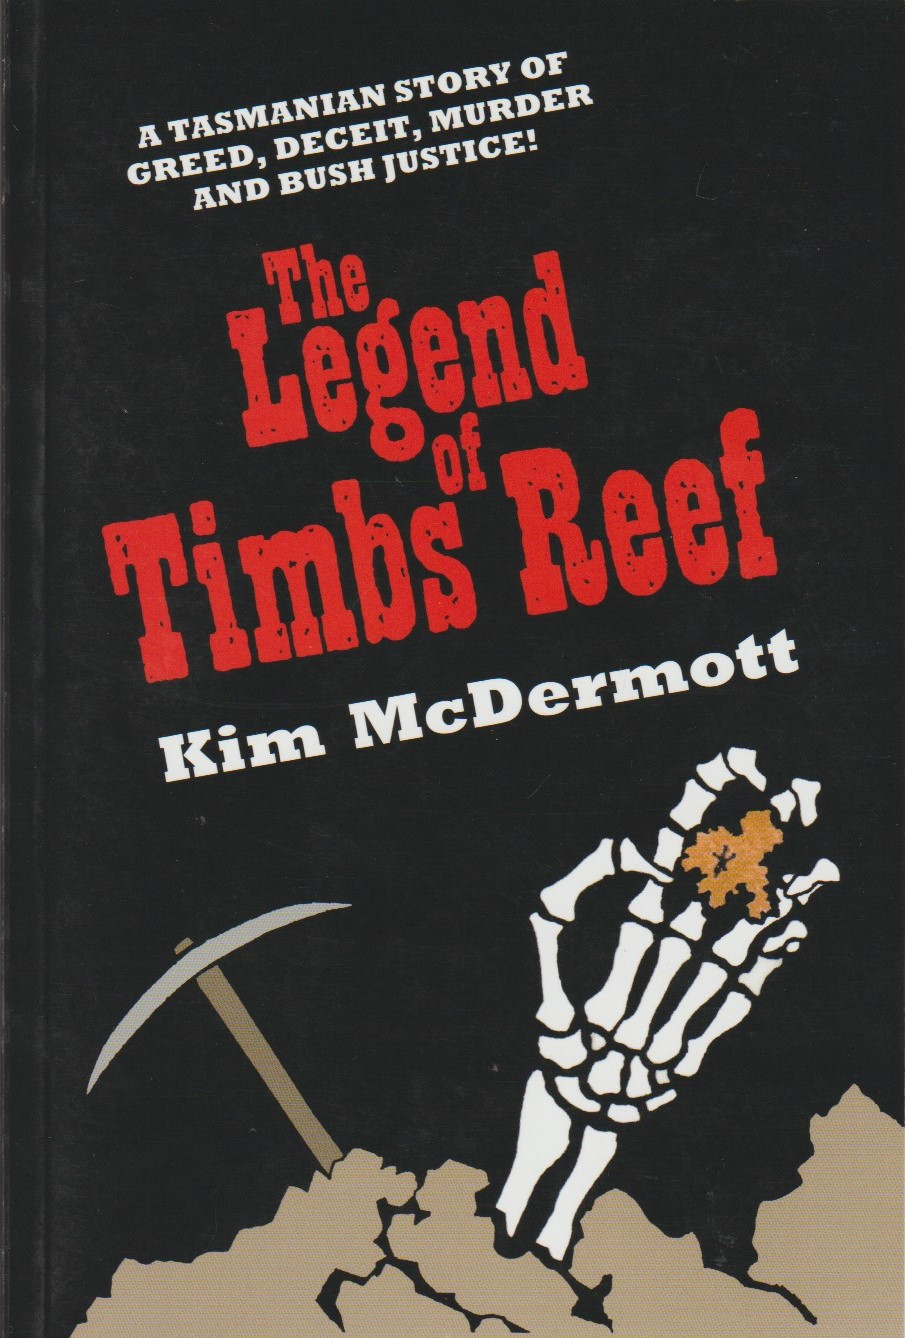 The Legend of Timbs Reef